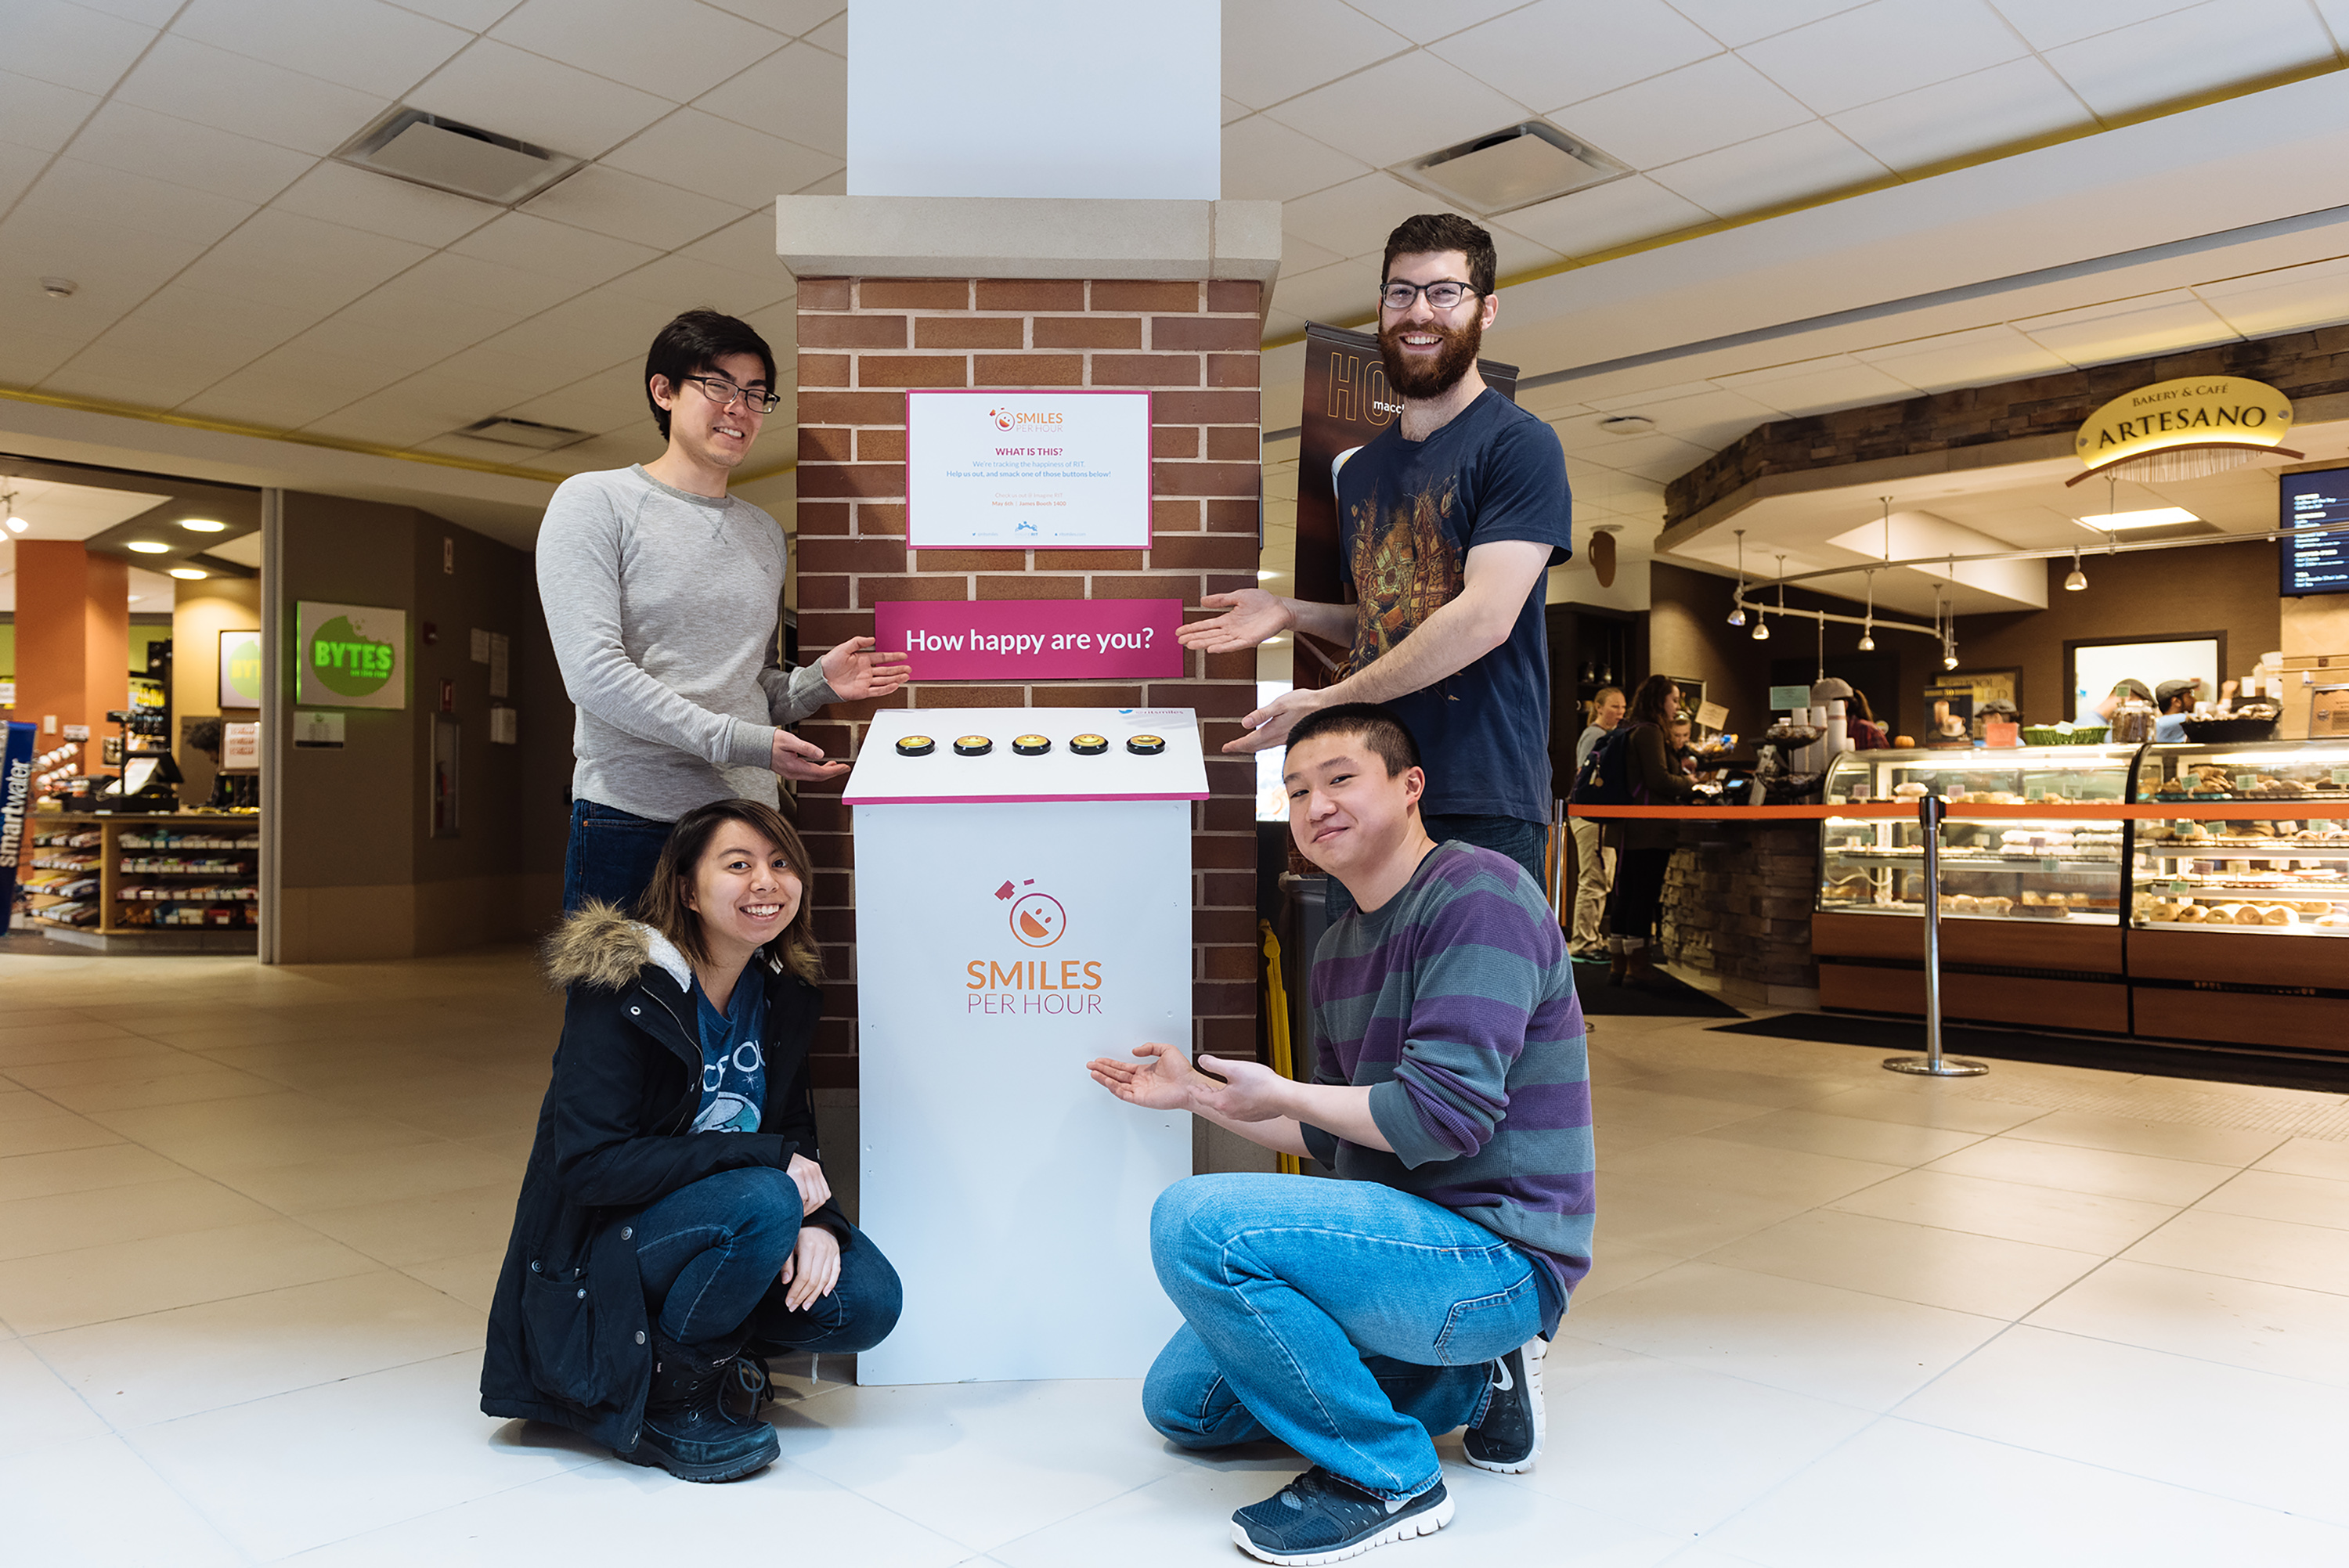 4 people pose next to a white podium in front of Artesanos